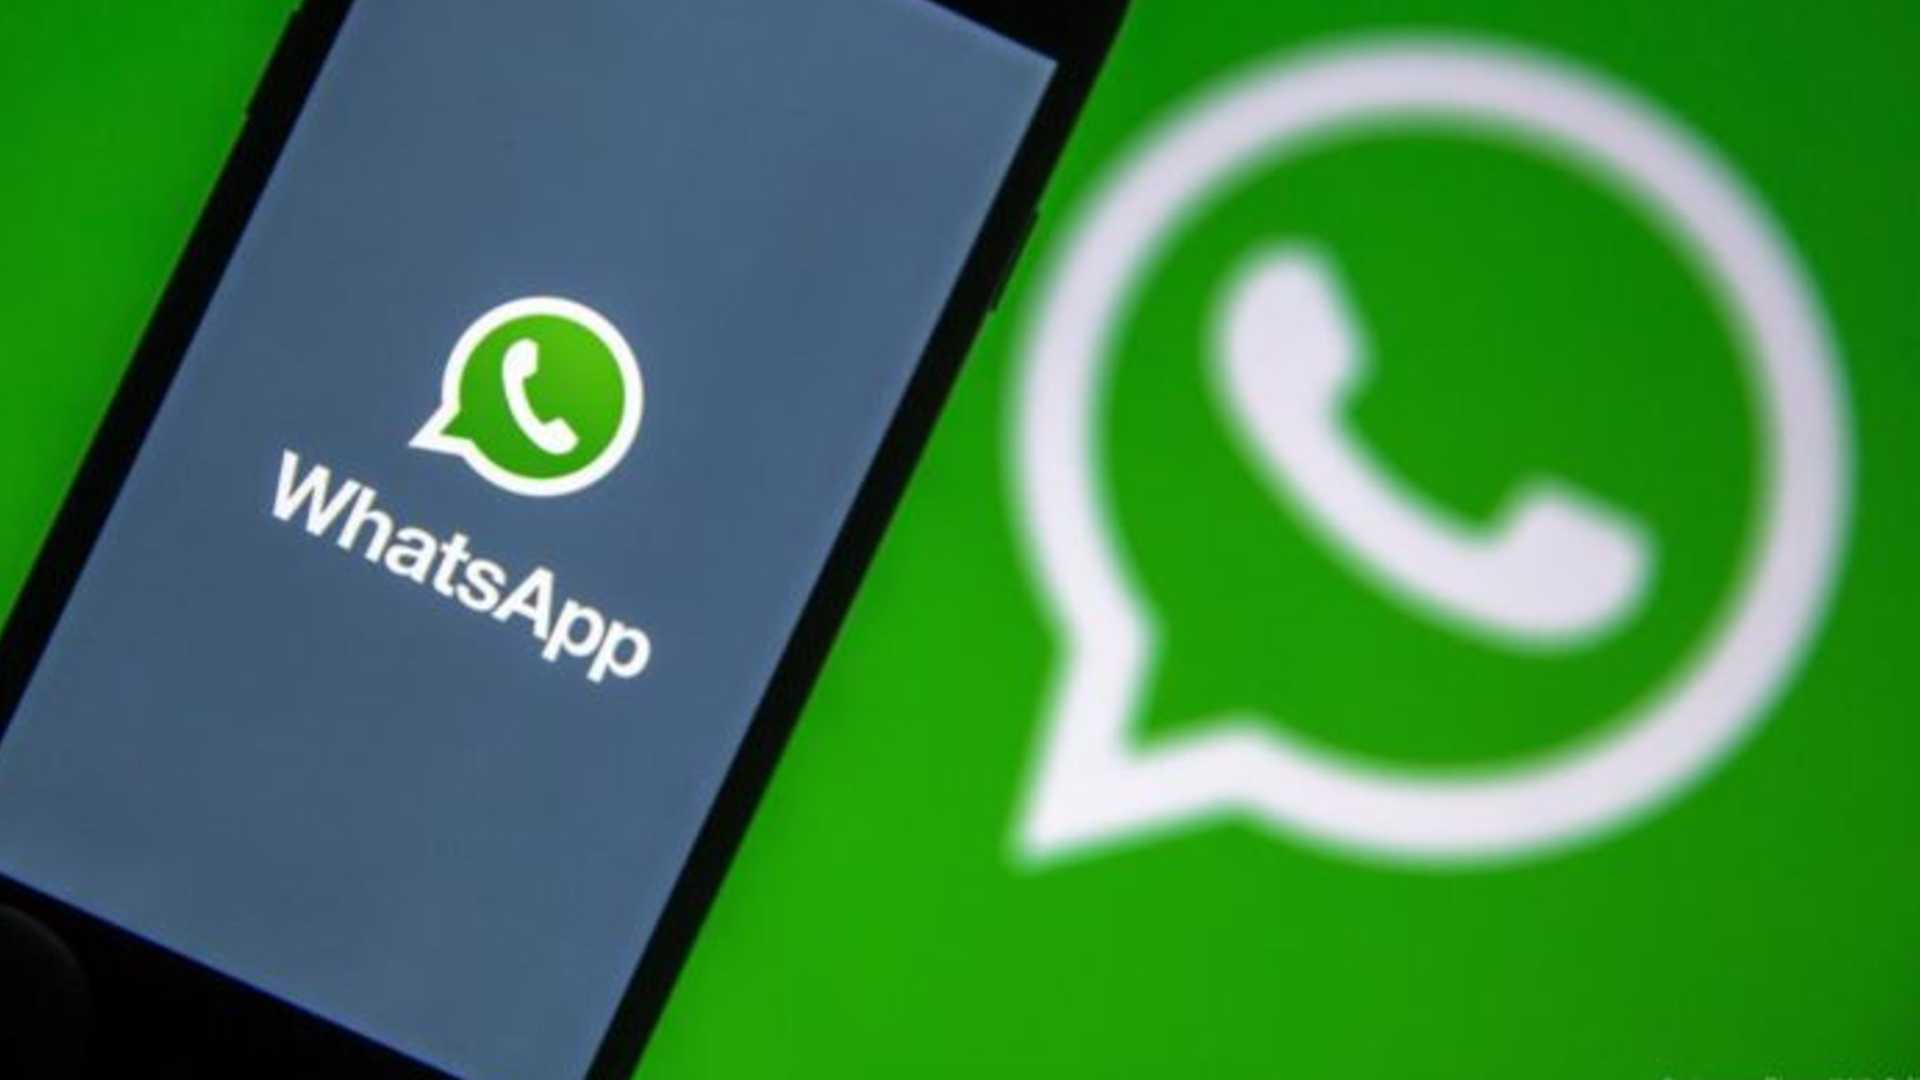 WhatsApp message now threatens smartphone hacking